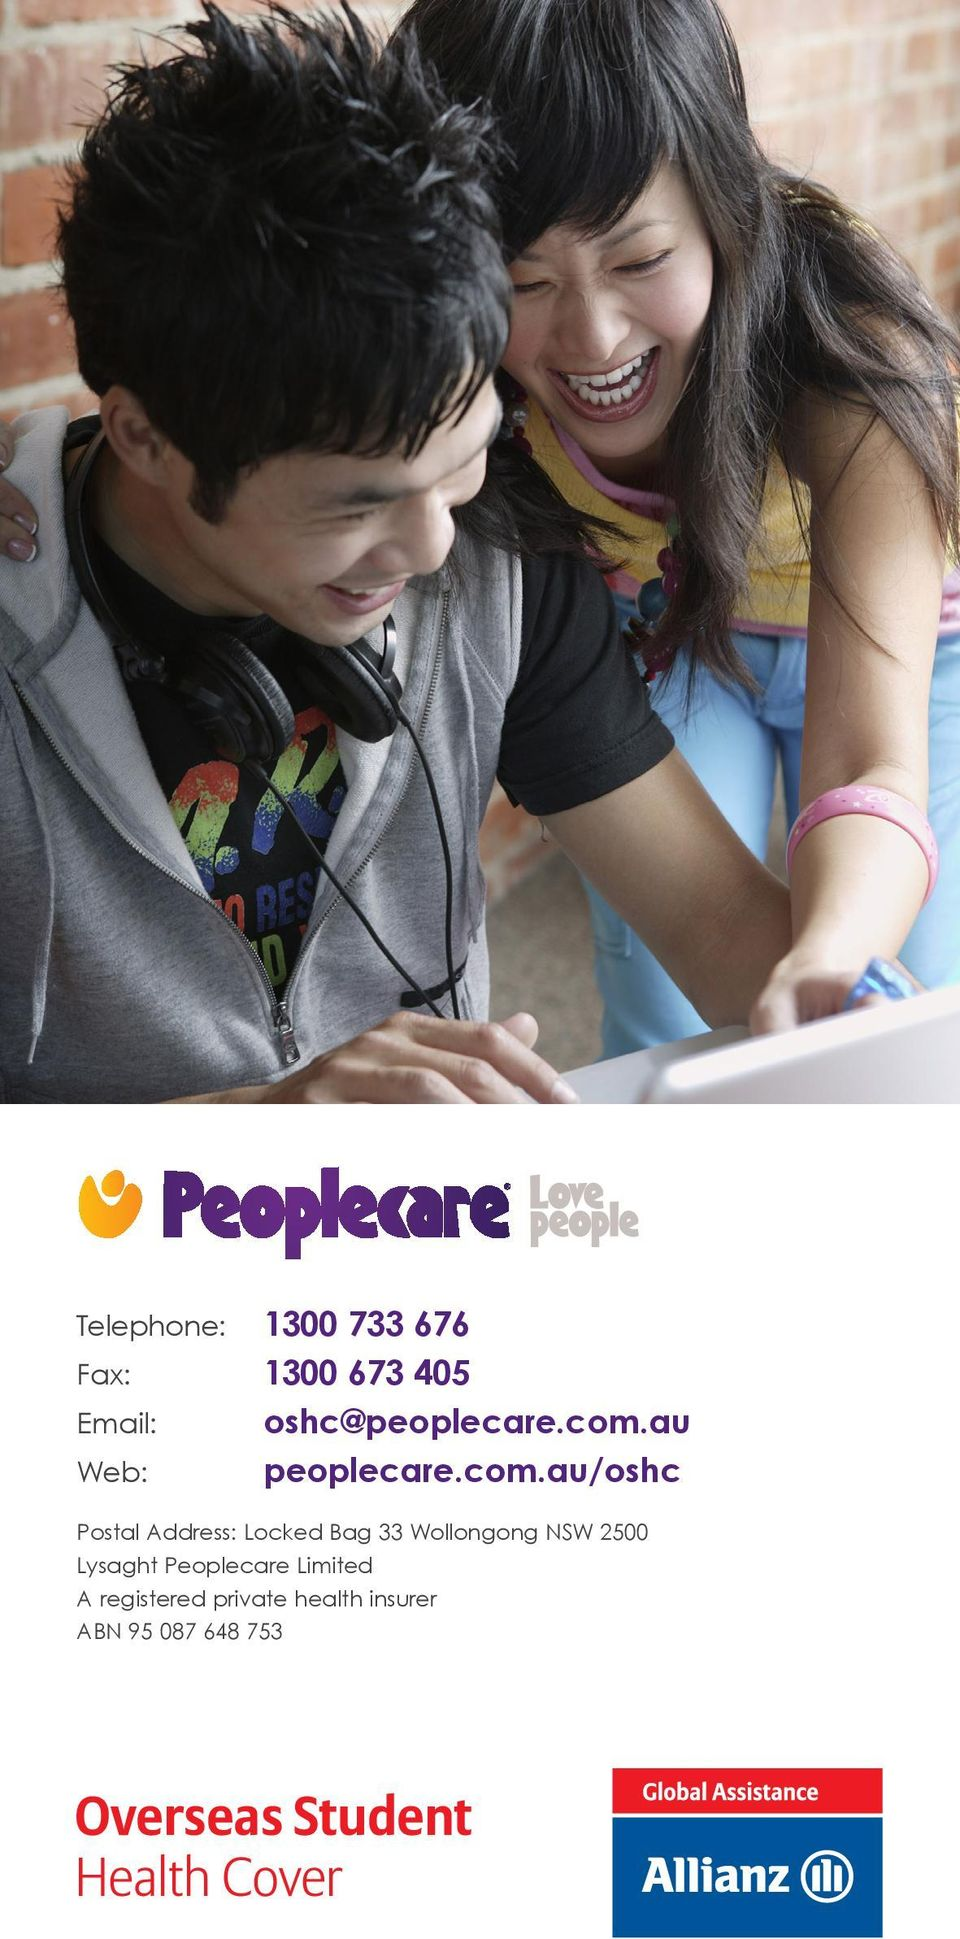 Wollongong NSW 2500 Lysaght Peoplecare Limited A registered